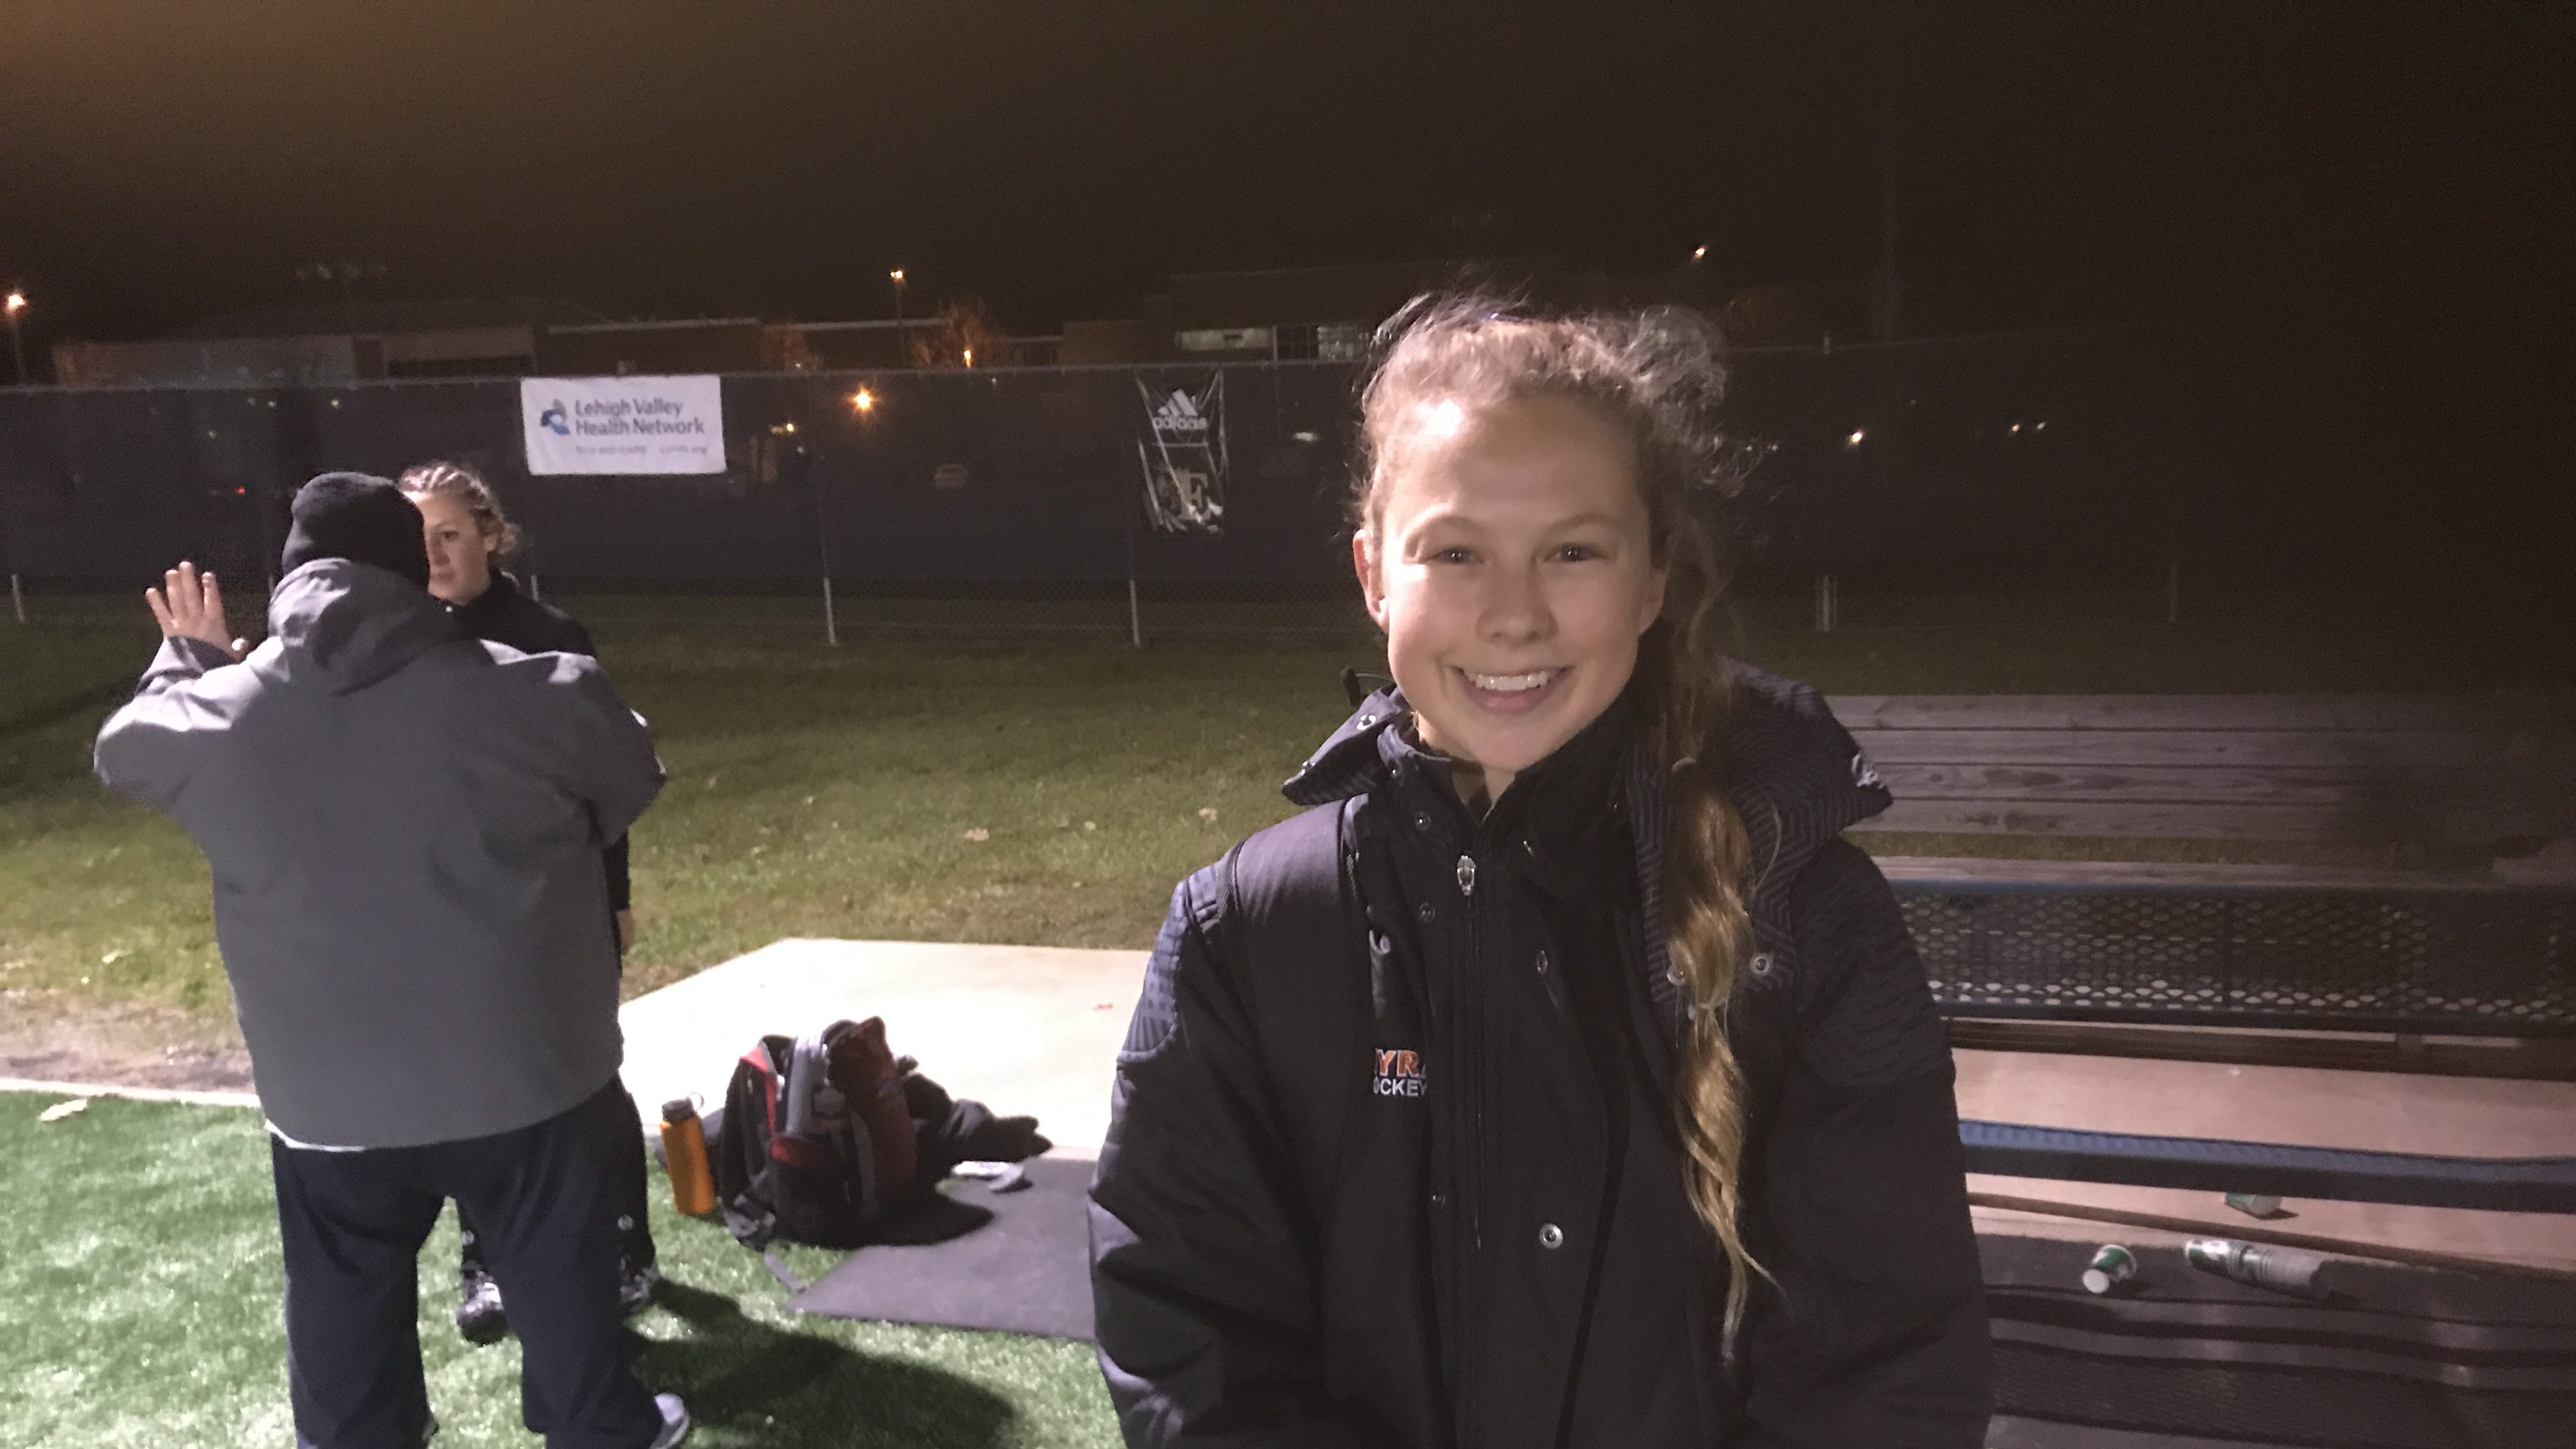 Nicole Shank was one of three Palmyra goal scorers in the Cougars' 3-1 state semifinal win over Wyoming Valley West on Tuesday night.